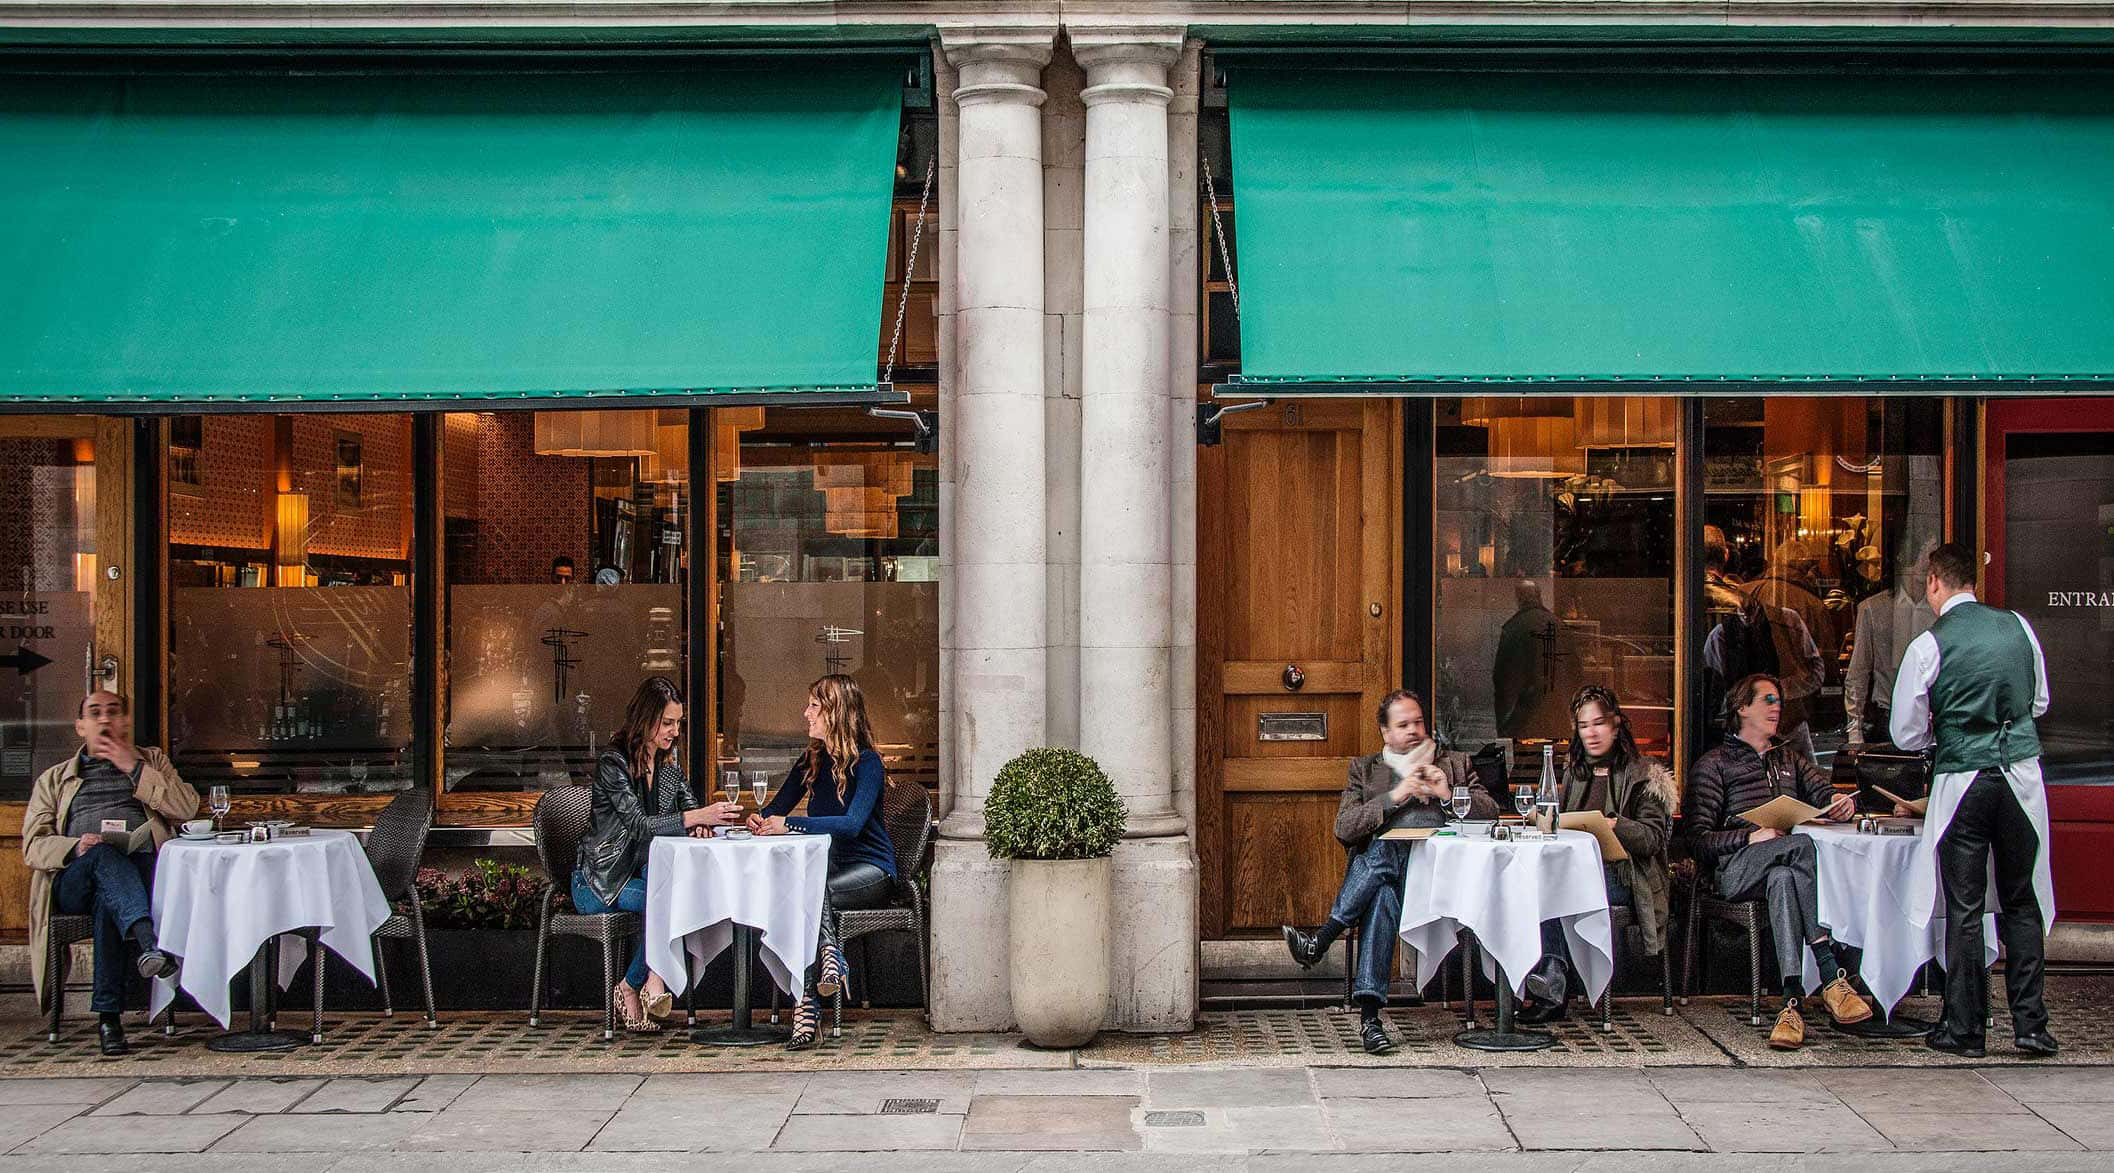 Franco's Italian restaurant on Jermyn Street, London, which is introducing a vegetarian and vegan menu for the first time after 72 years